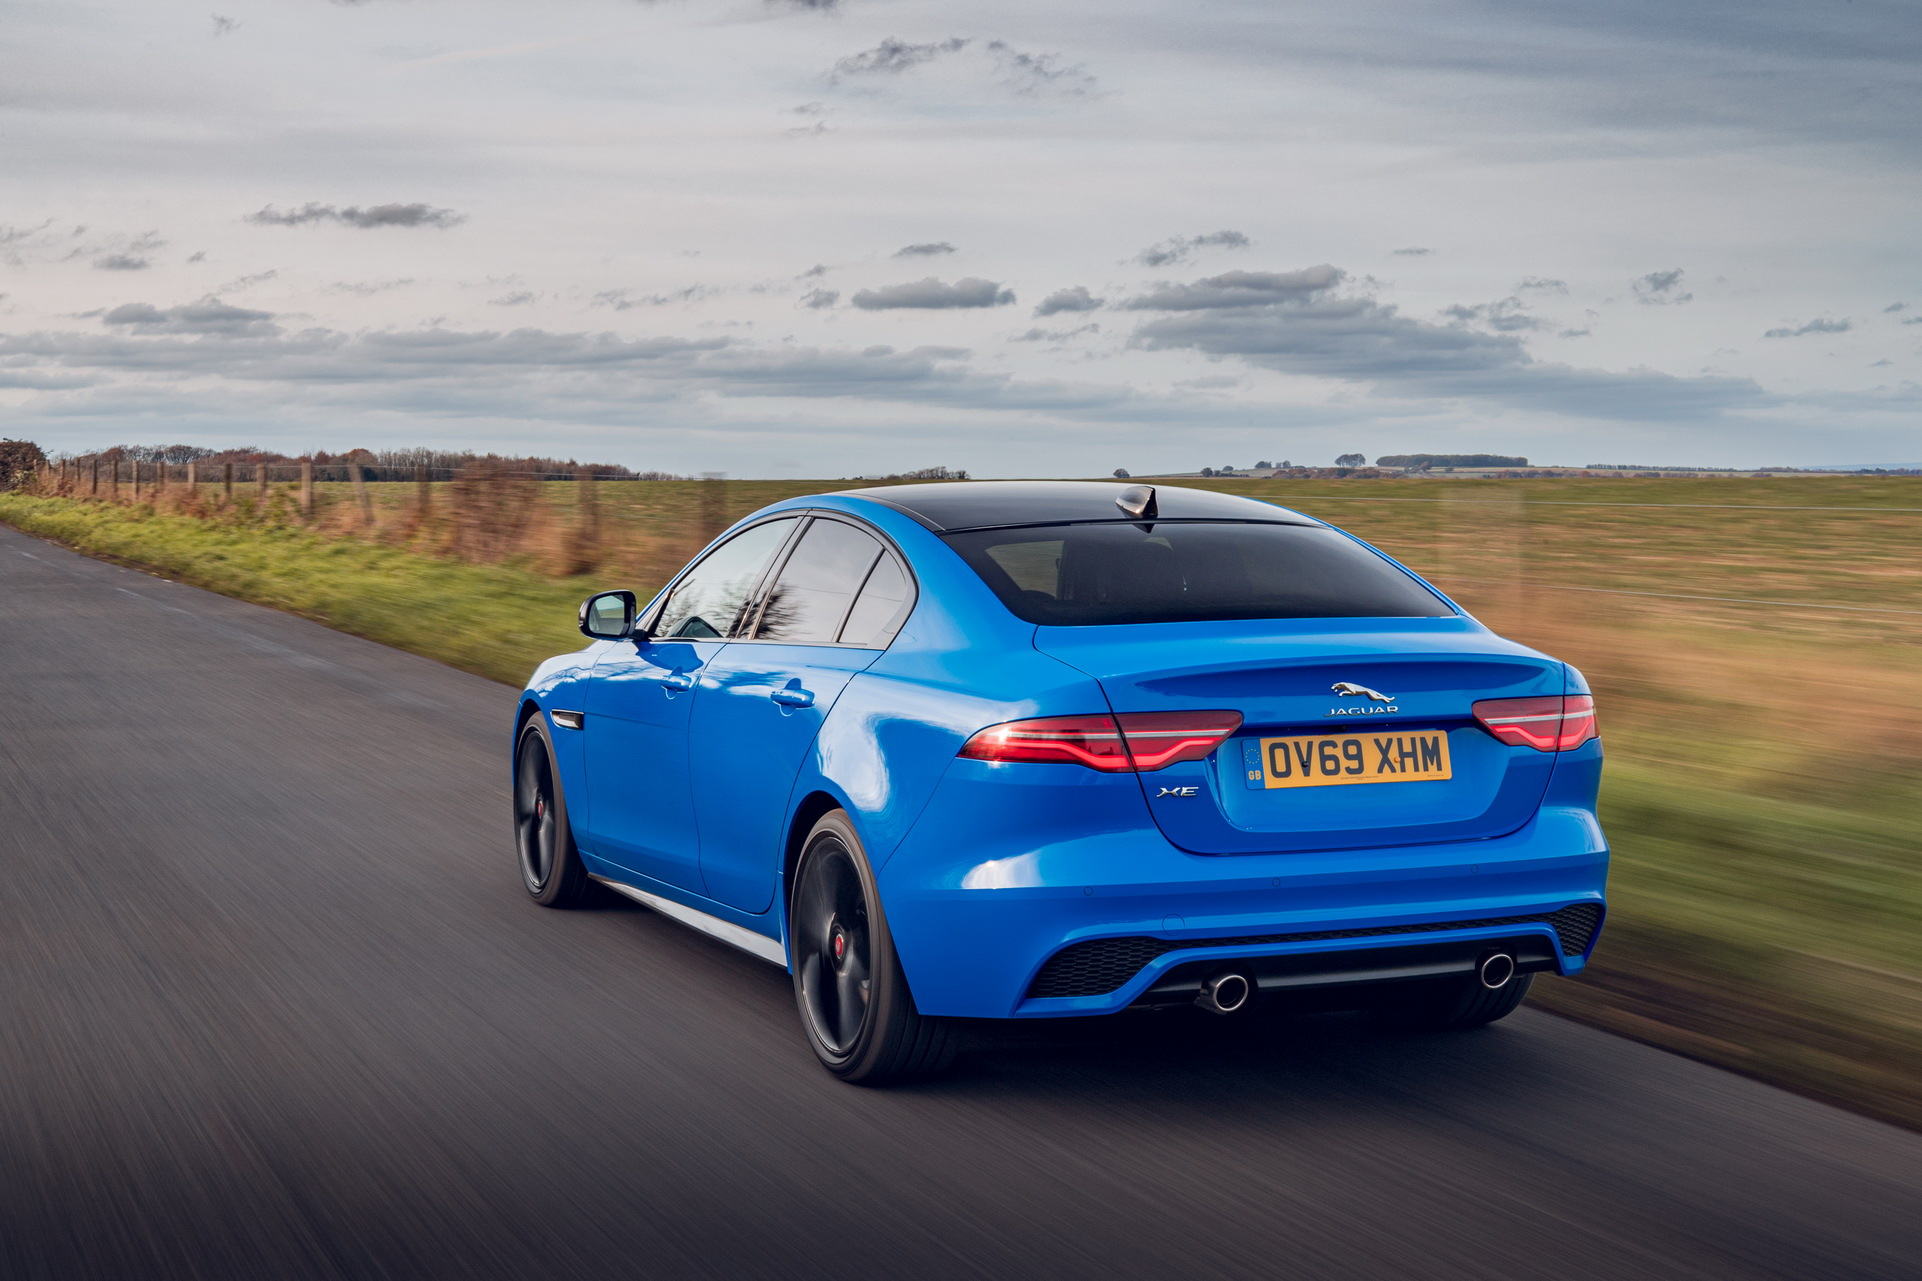 2020 Jaguar Xe Reims Edition Wears French Racing Blue Paint